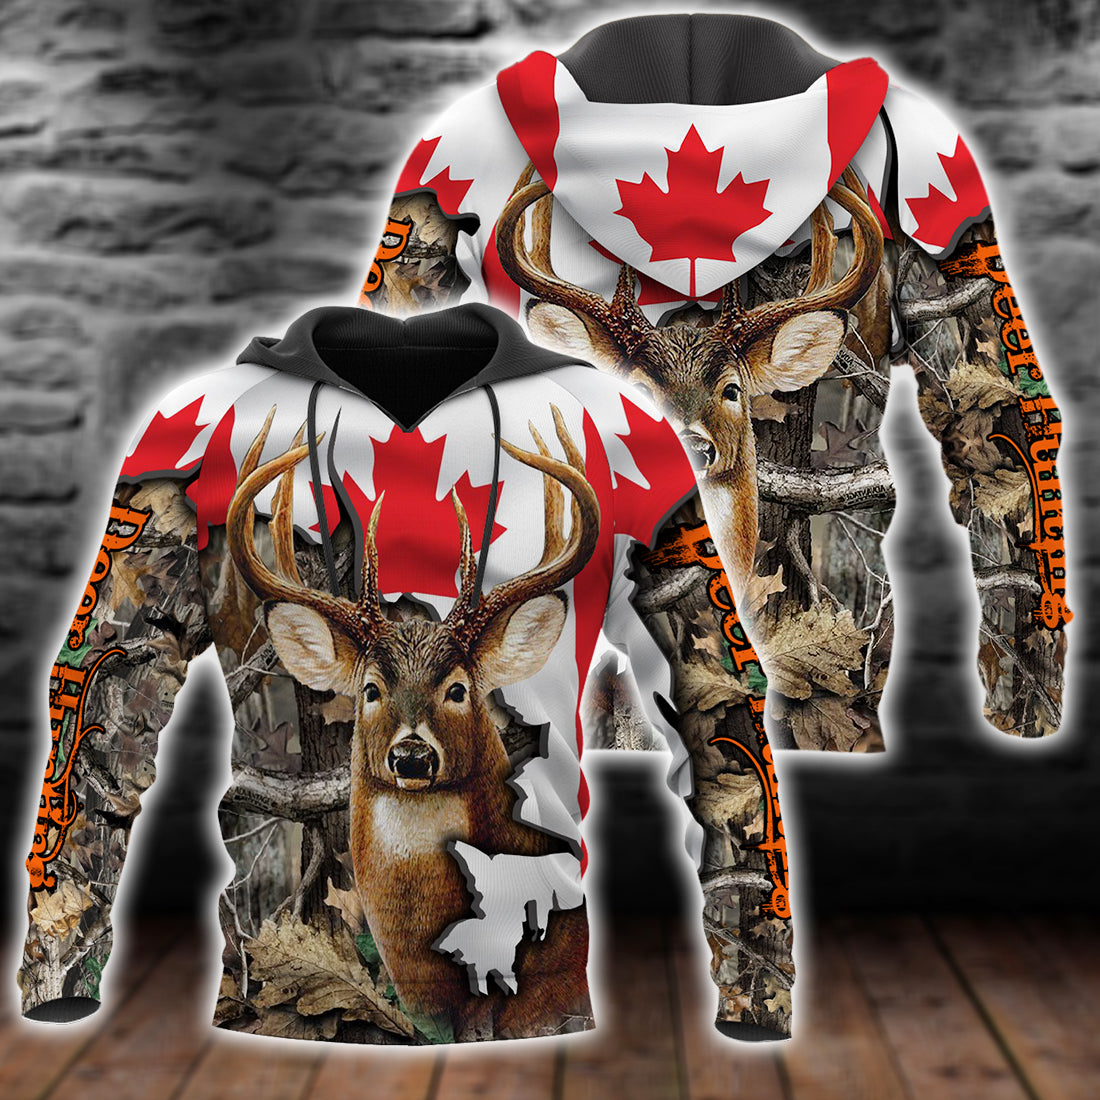 DEER HUNTING CANADA ALL OVER PRINT SHIRT FOR MEN AND WOMEN - luxamz